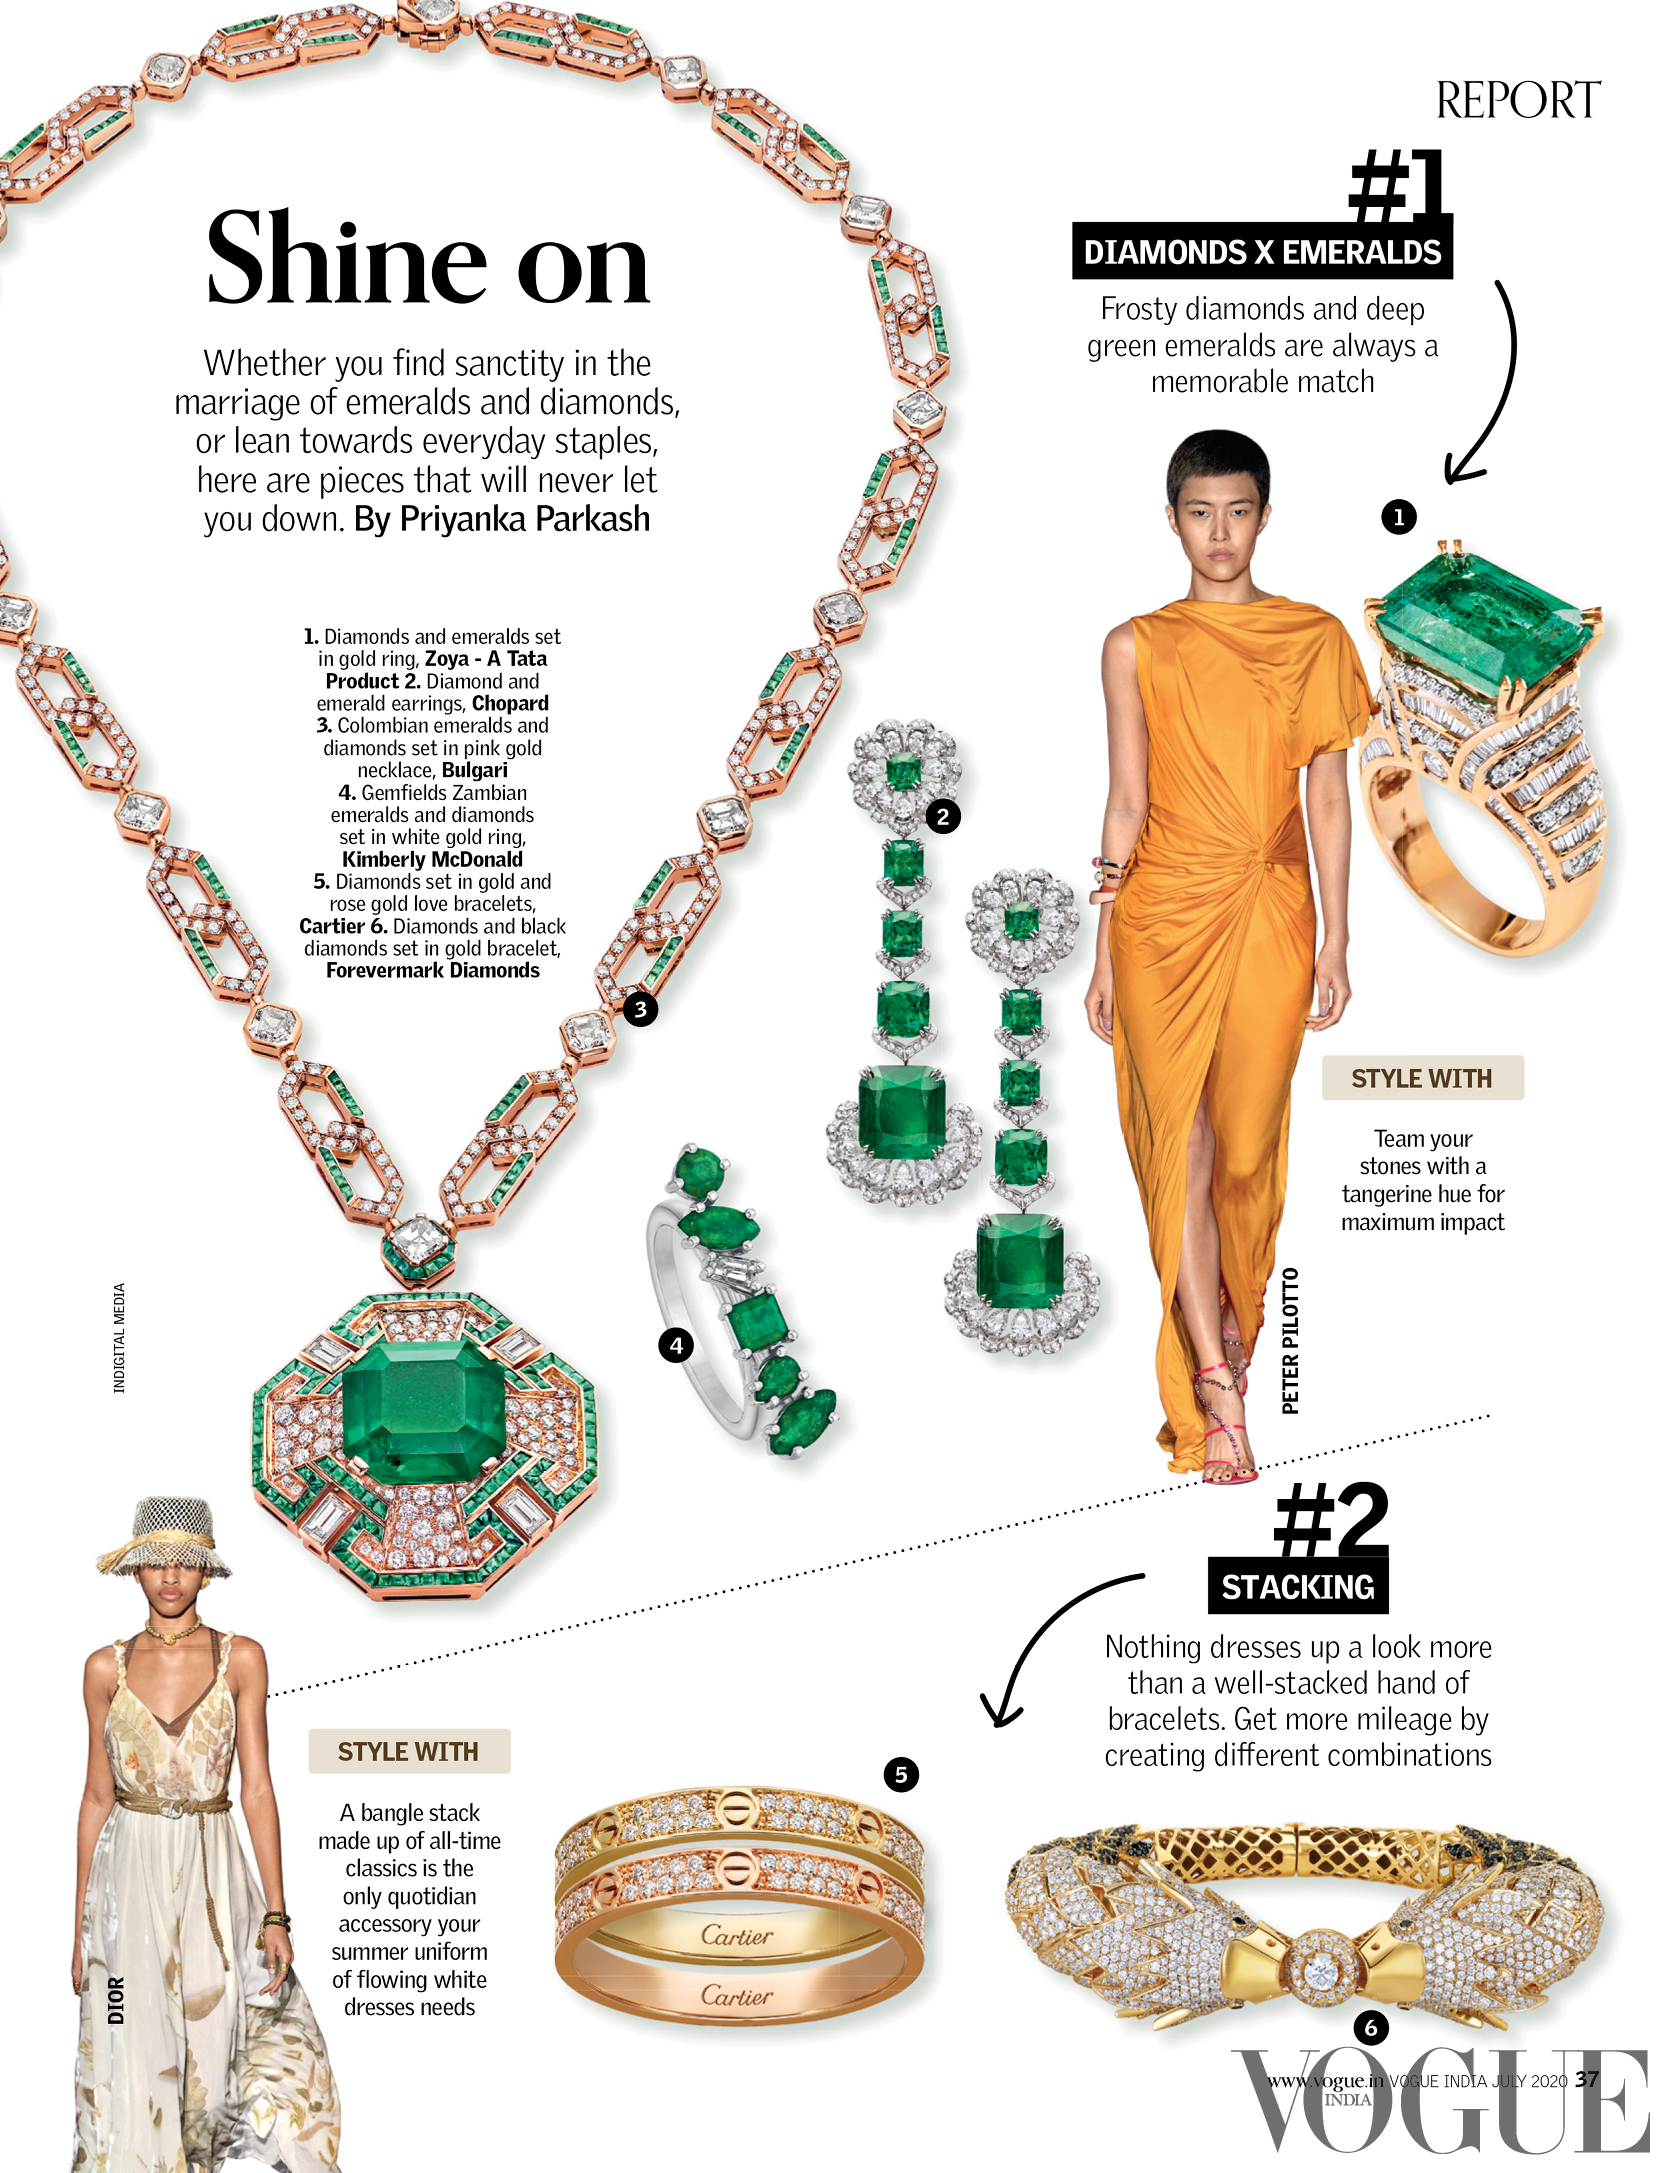 Natural Diamond council highlights its it's trending diamond pieces from the annual trend report